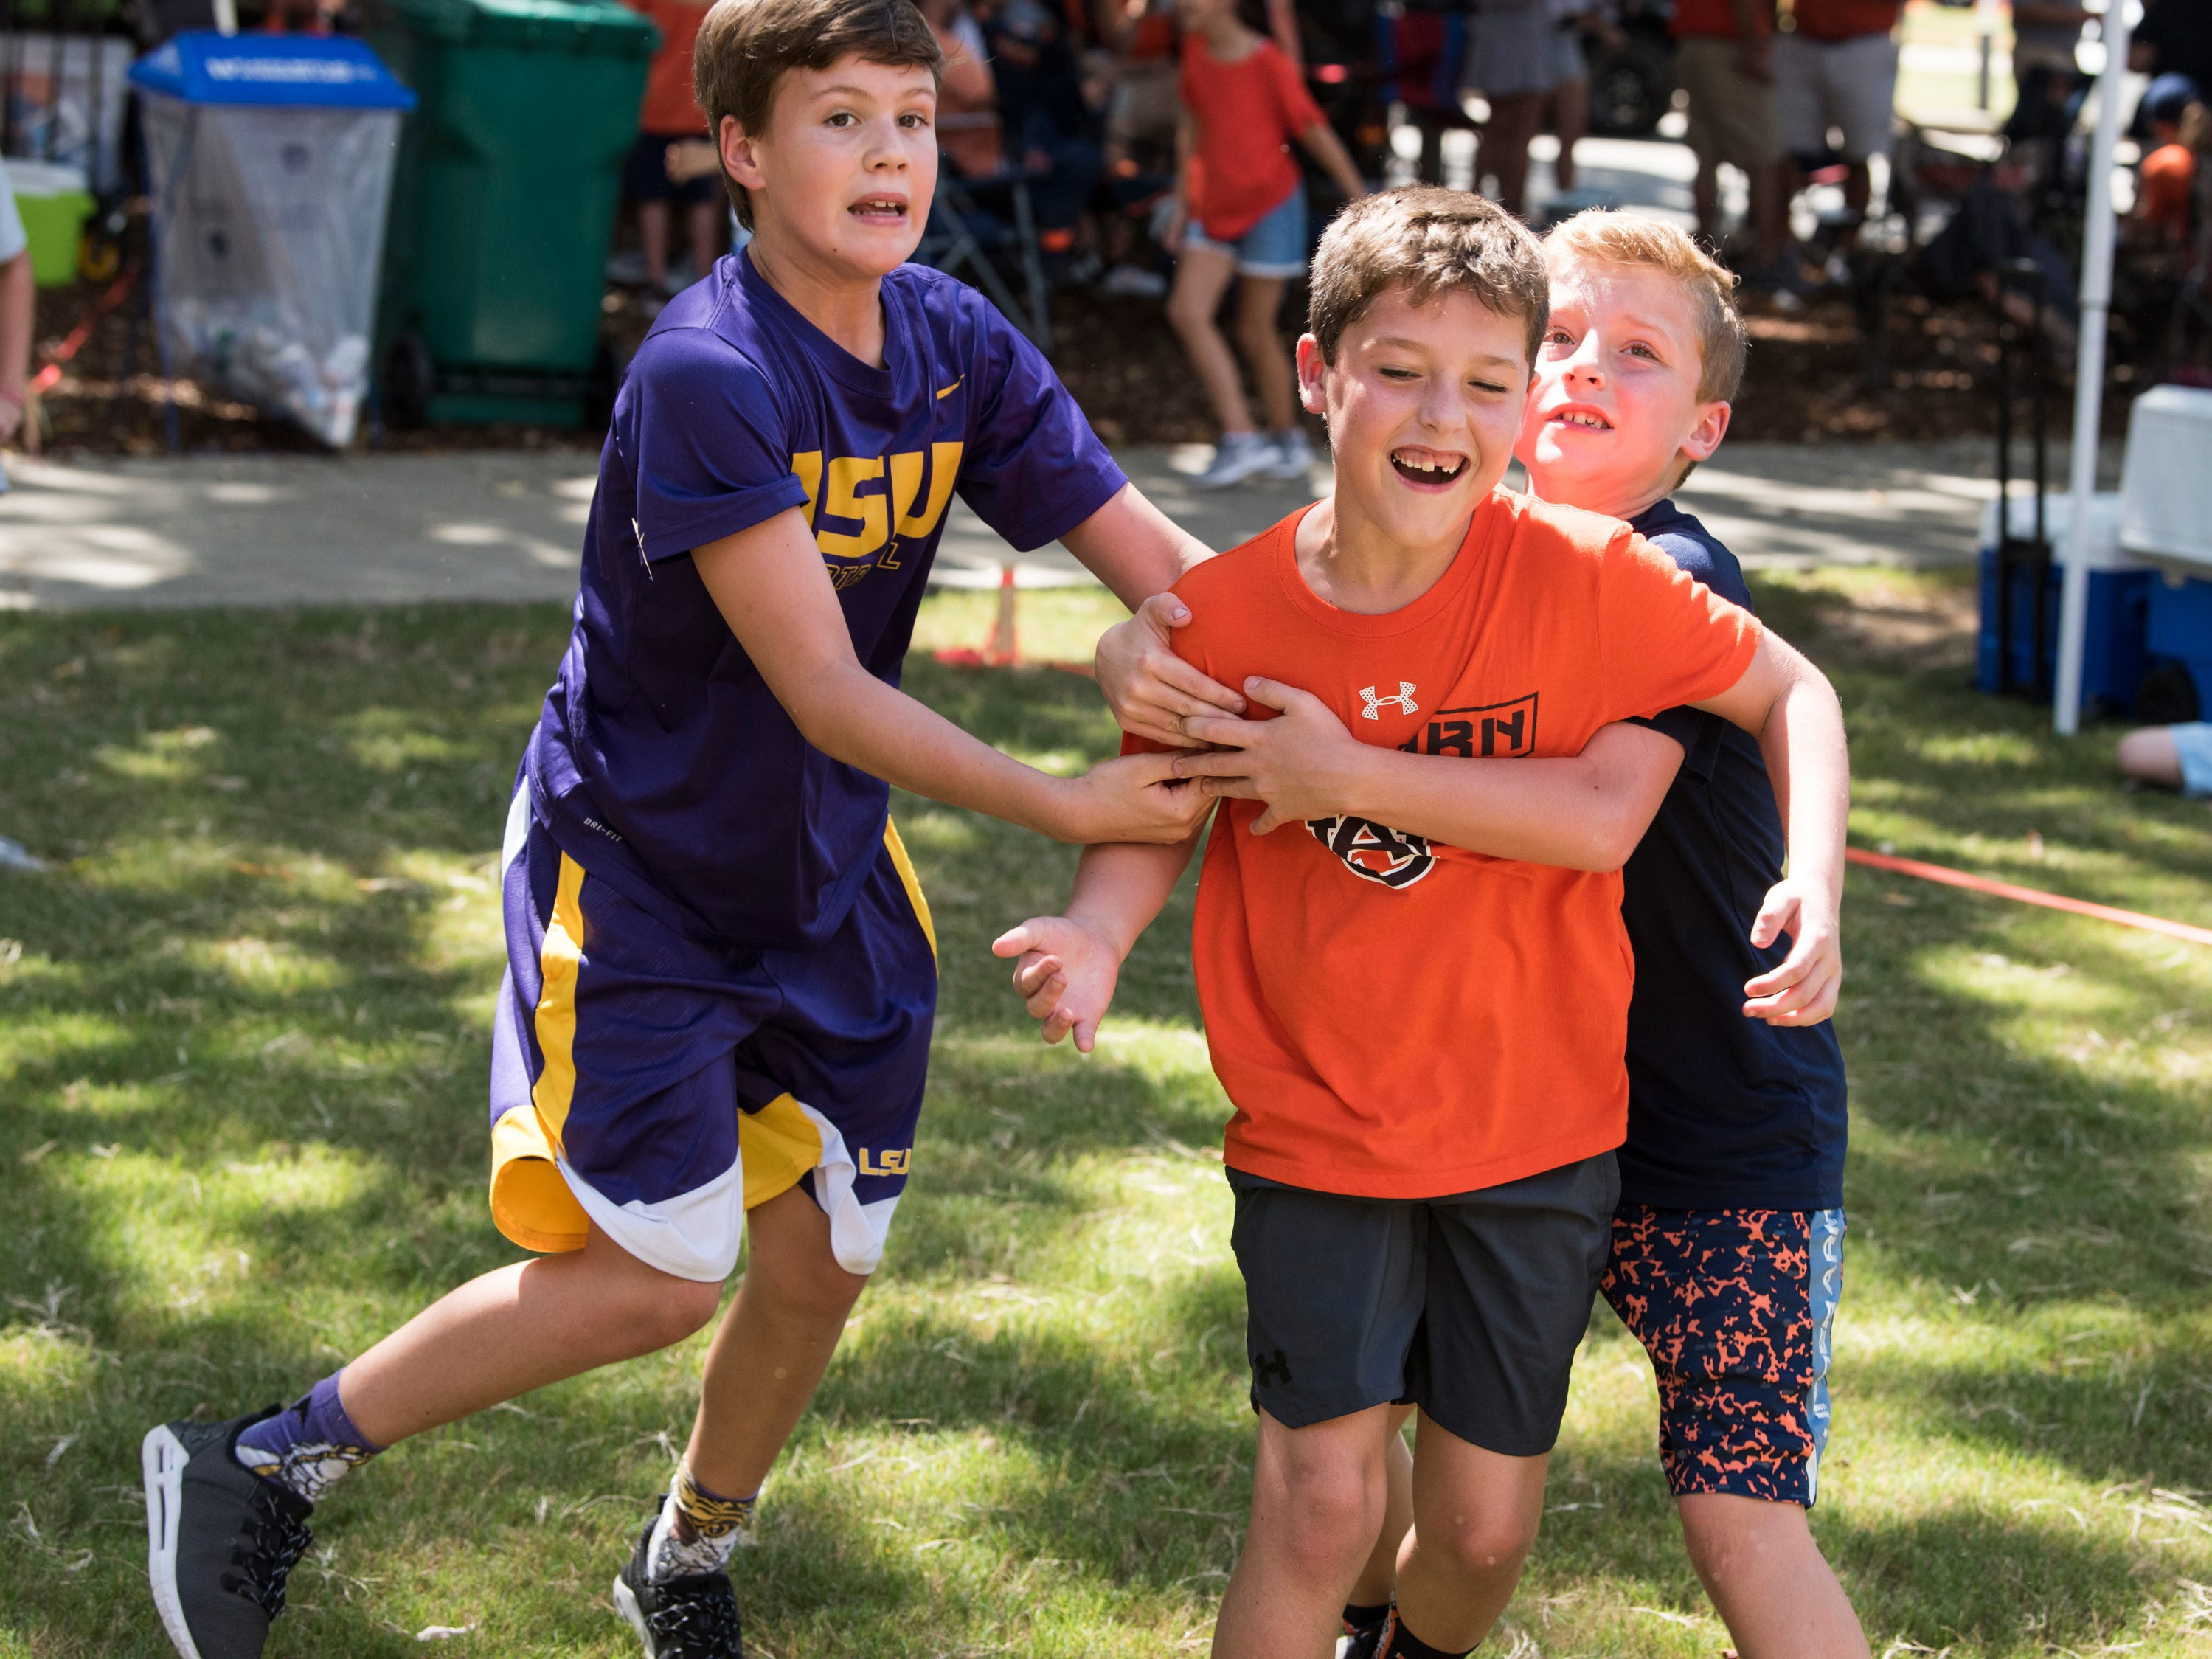 Patrick McQueen, 11, from left, Kody and Kale Barganier, both 9, play some tailgate football outside Jordan-Hare Stadium in Auburn, Ala., on Saturday, Sept. 15, 2018.